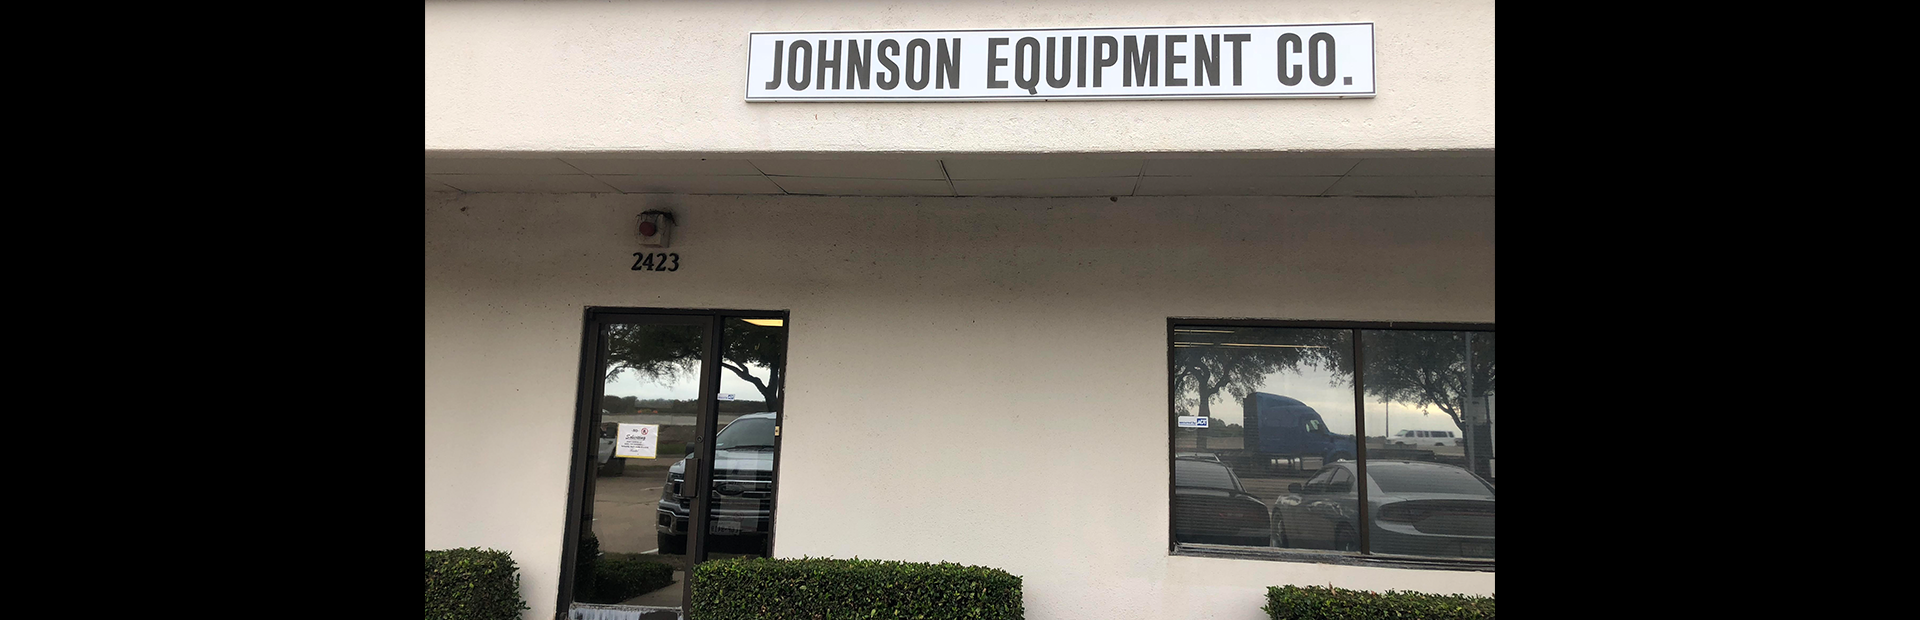 Johnson Equipment Company - Fort Worth